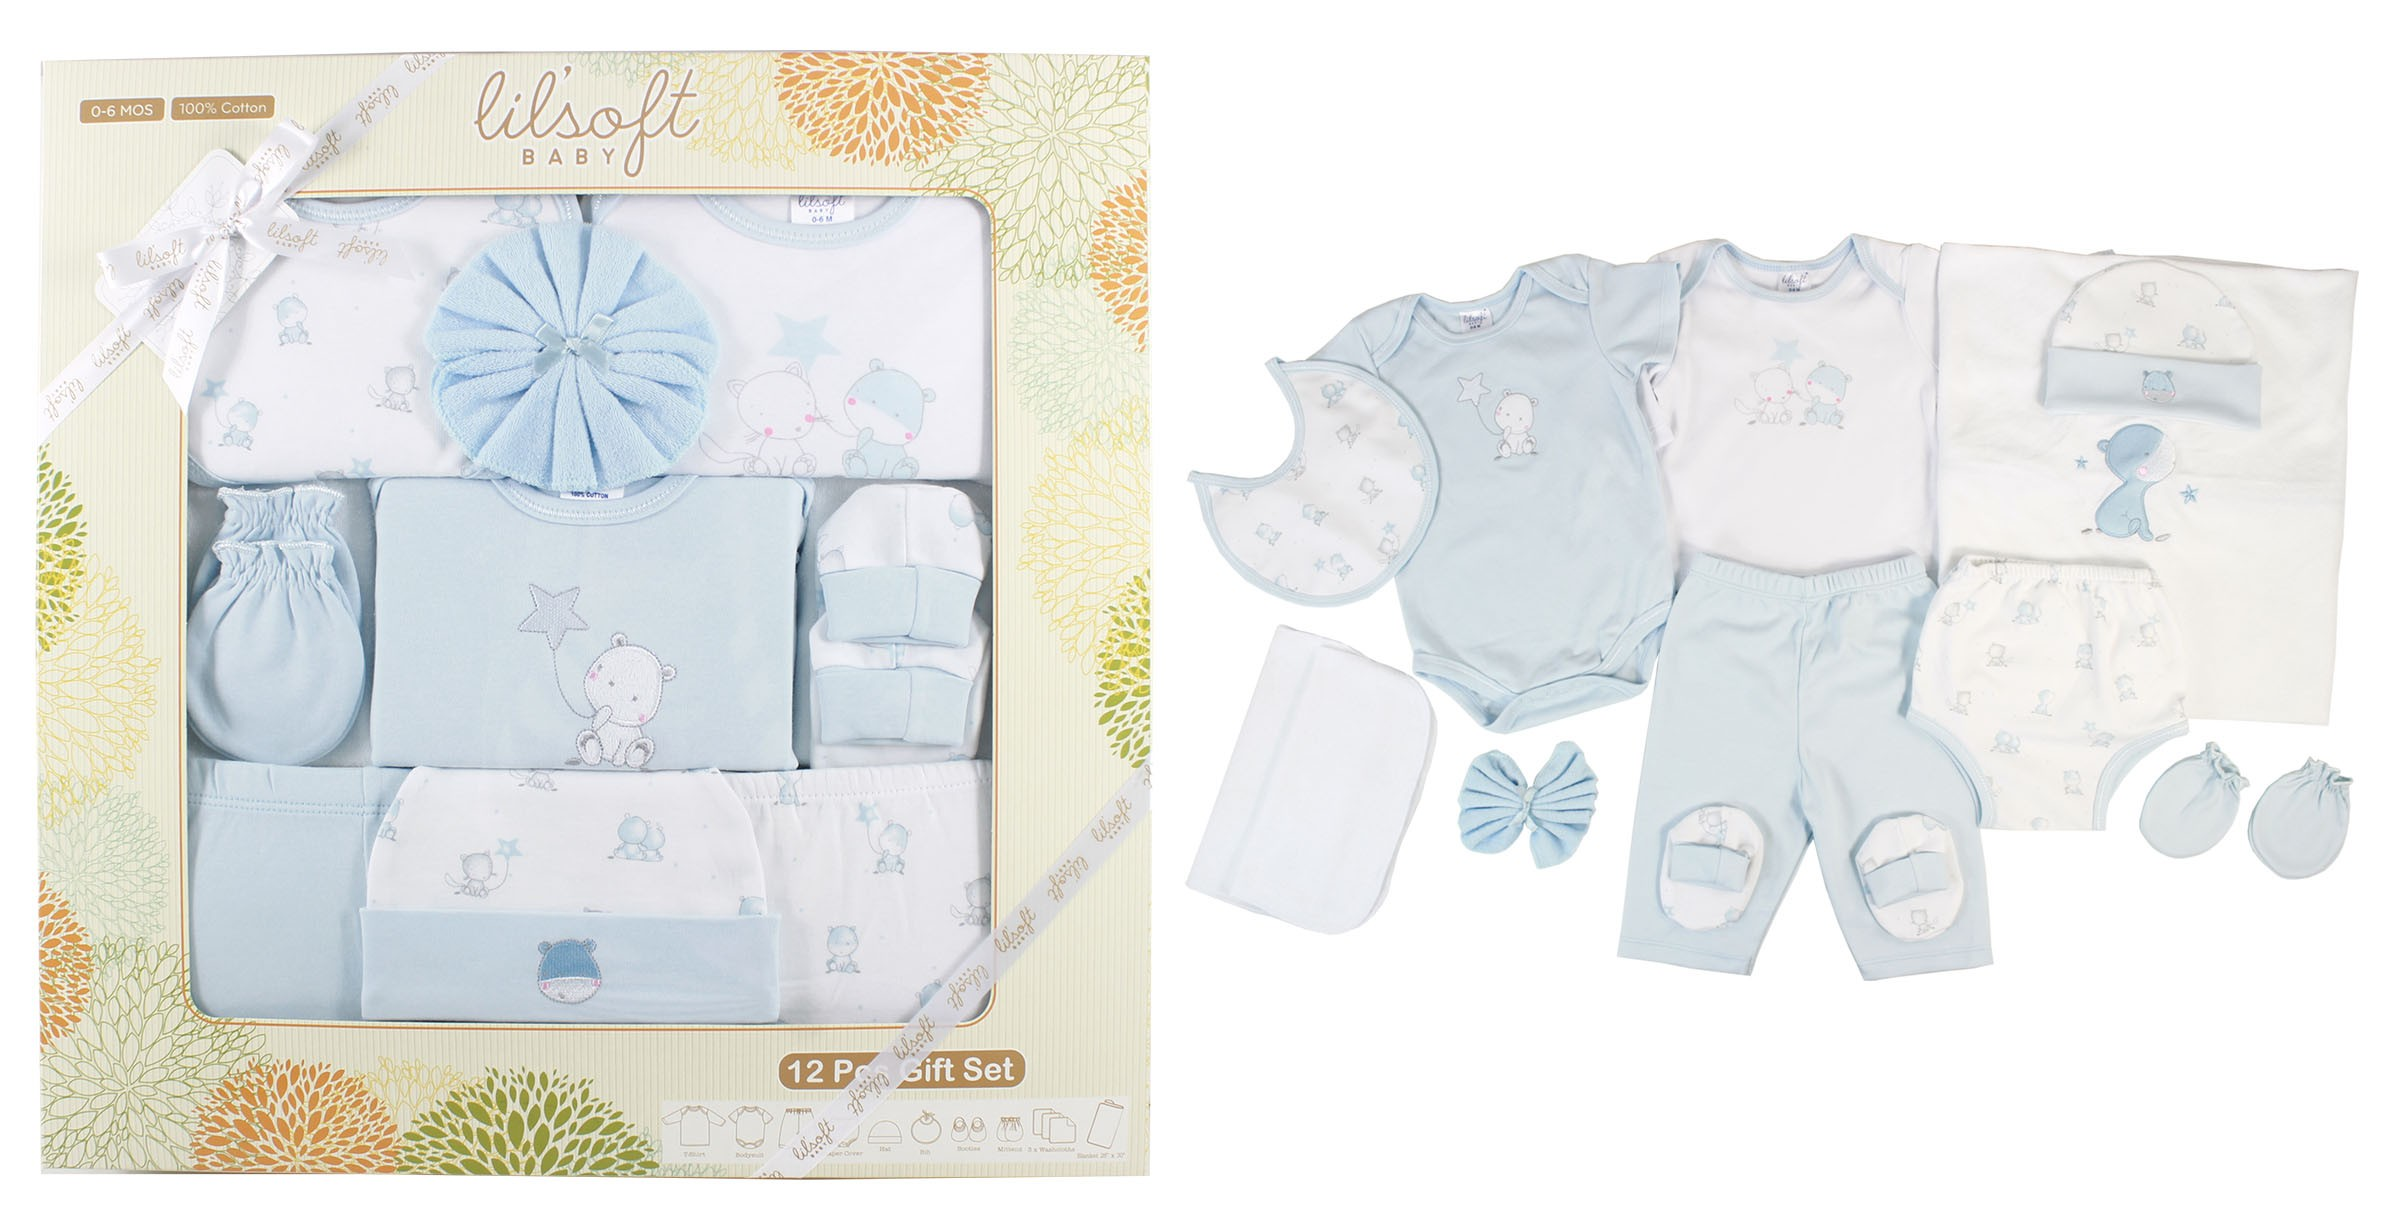 4472b66291e 12 PCS BABY GIFT SET for Gift Sets